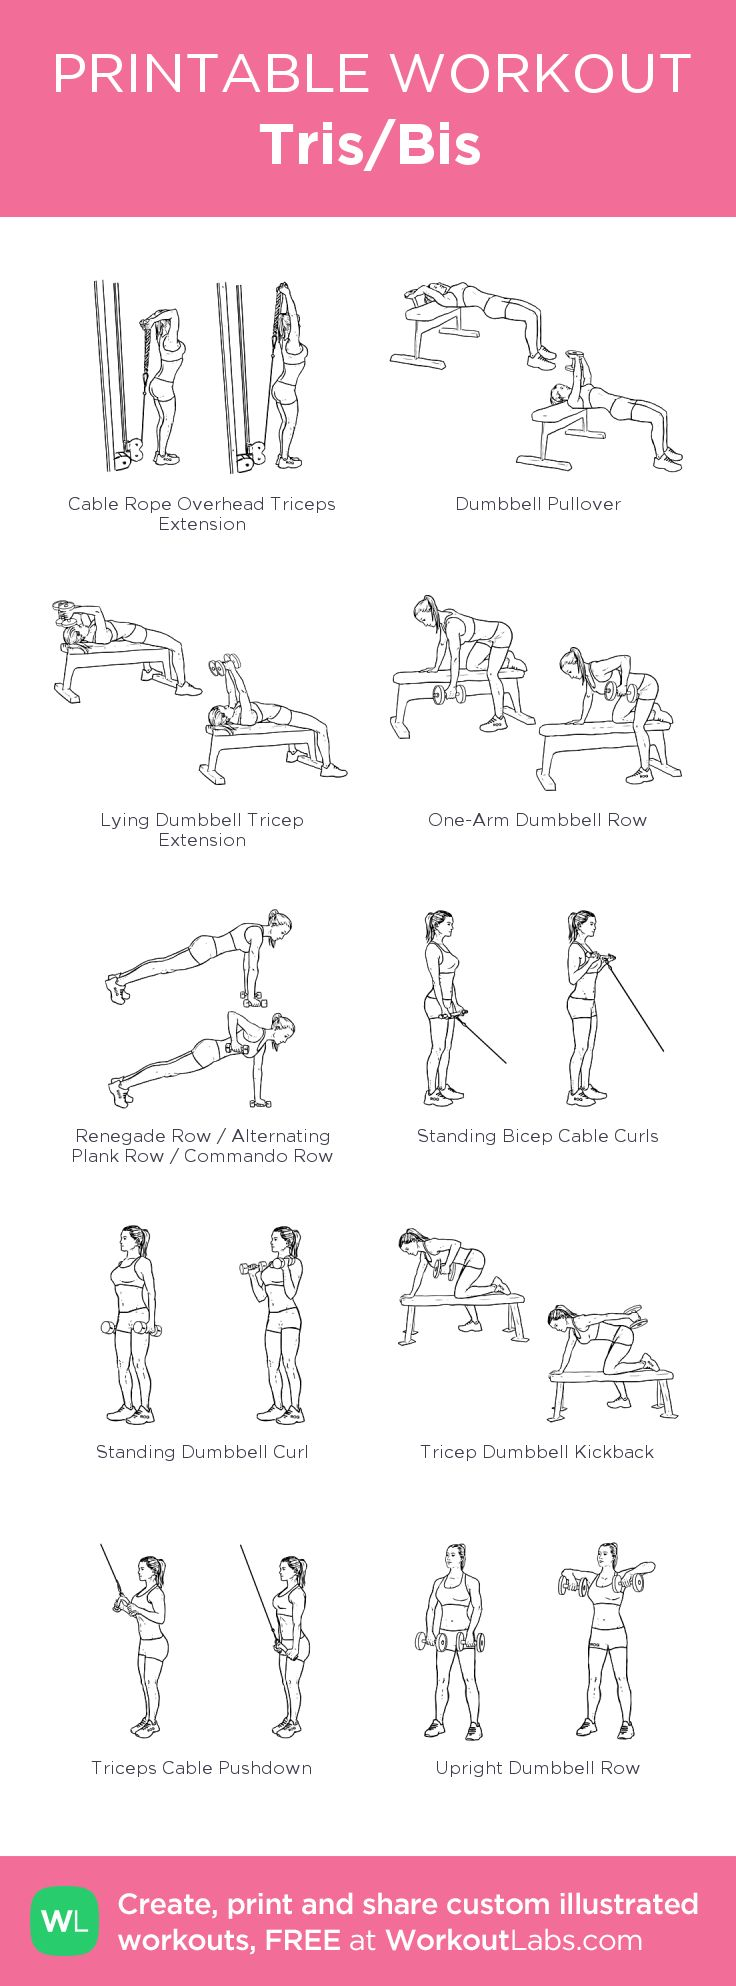 Tris/Bis:my visual workout created at WorkoutLabs.com • Click through to customize and download as a FREE PDF! #customworkout